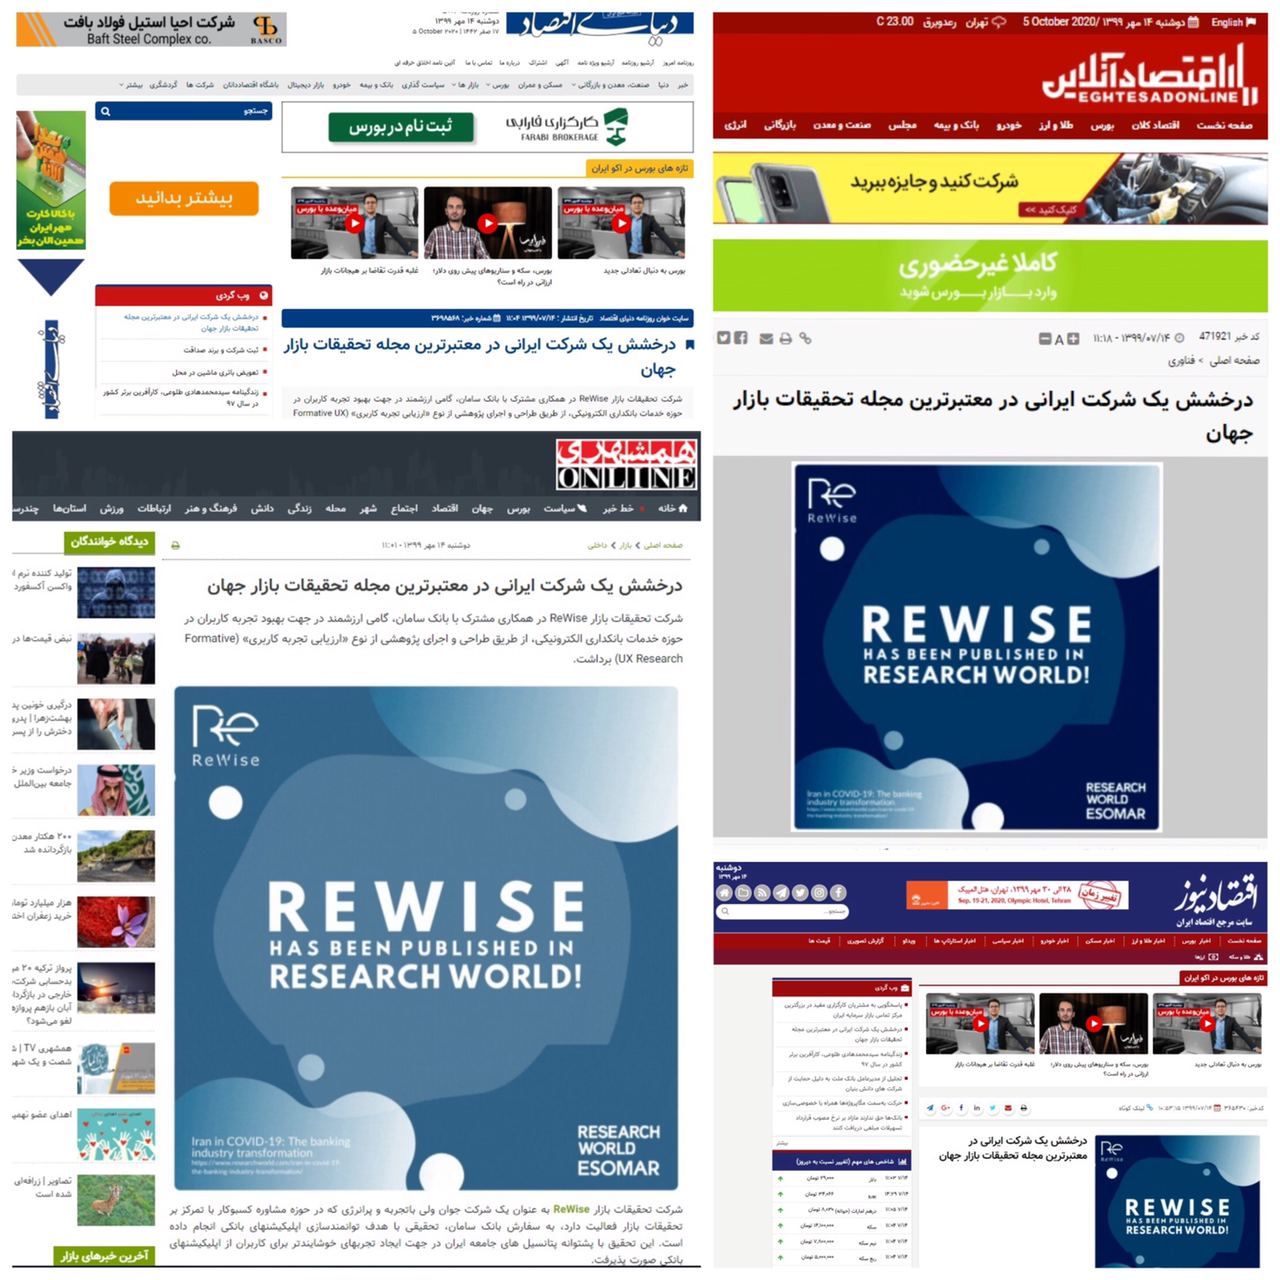 ReWise News on the net